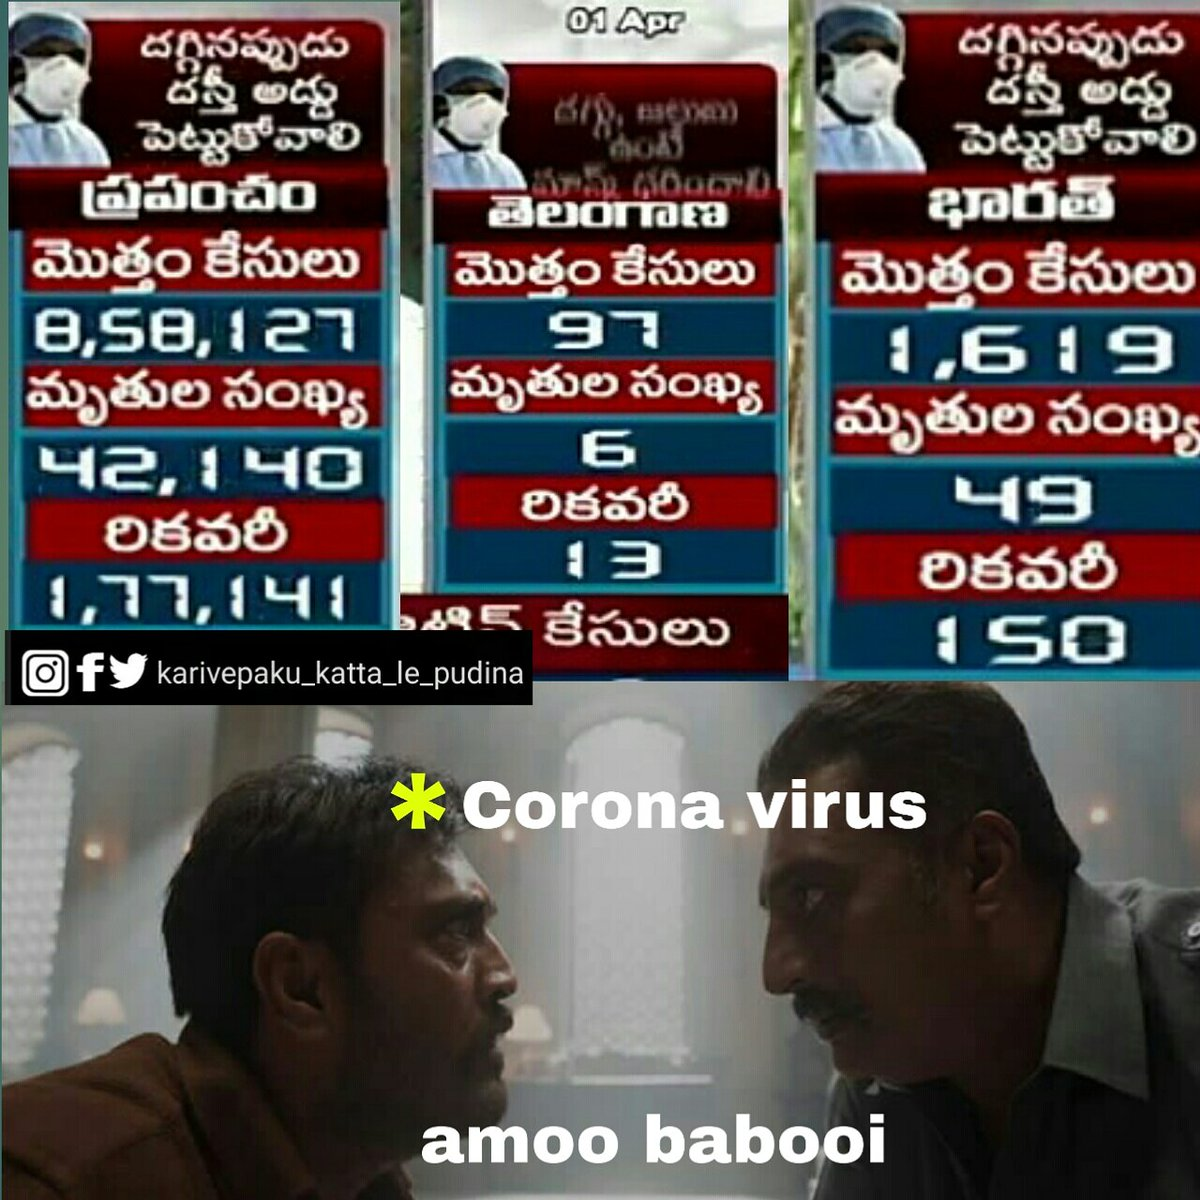 Do follow @Karivepa @memes_tonic #telugumemes #tiktoktelugu #TablighiJamaat #COVID #DebutWithBTS #KajalAggarwal #VijayDeverakonda #MaheshBabu #Prabhas20 #KTRpic.twitter.com/UYwkDXeGwN